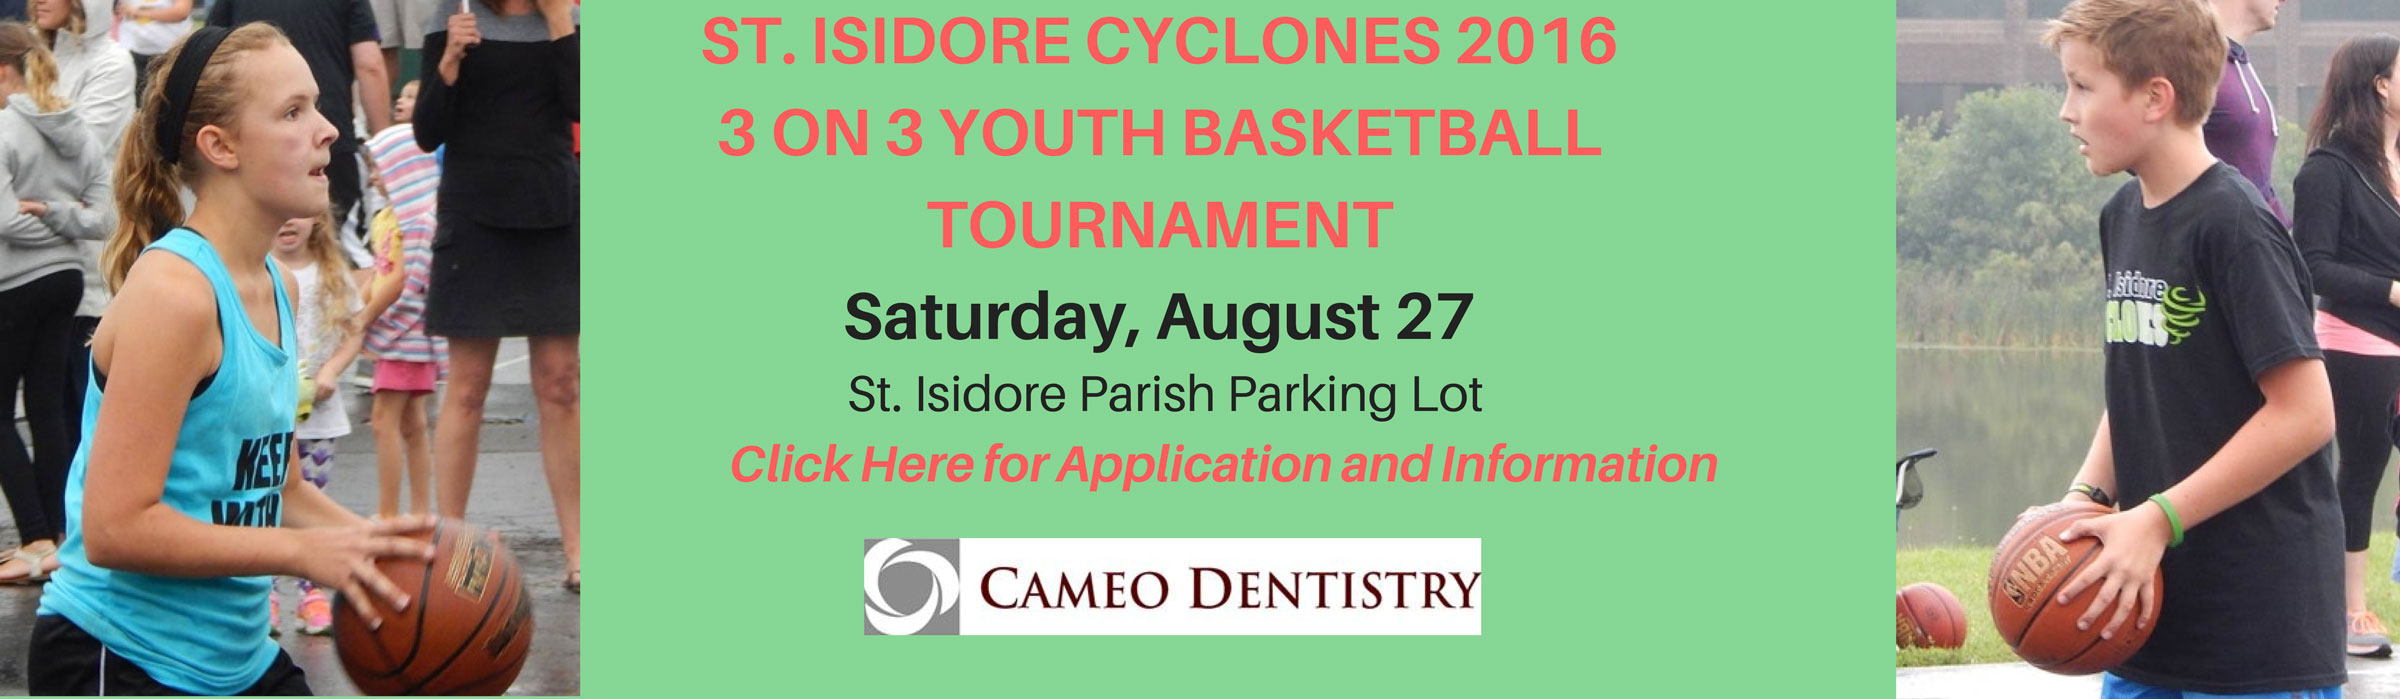 3-on-3-youth-basketball-tournament